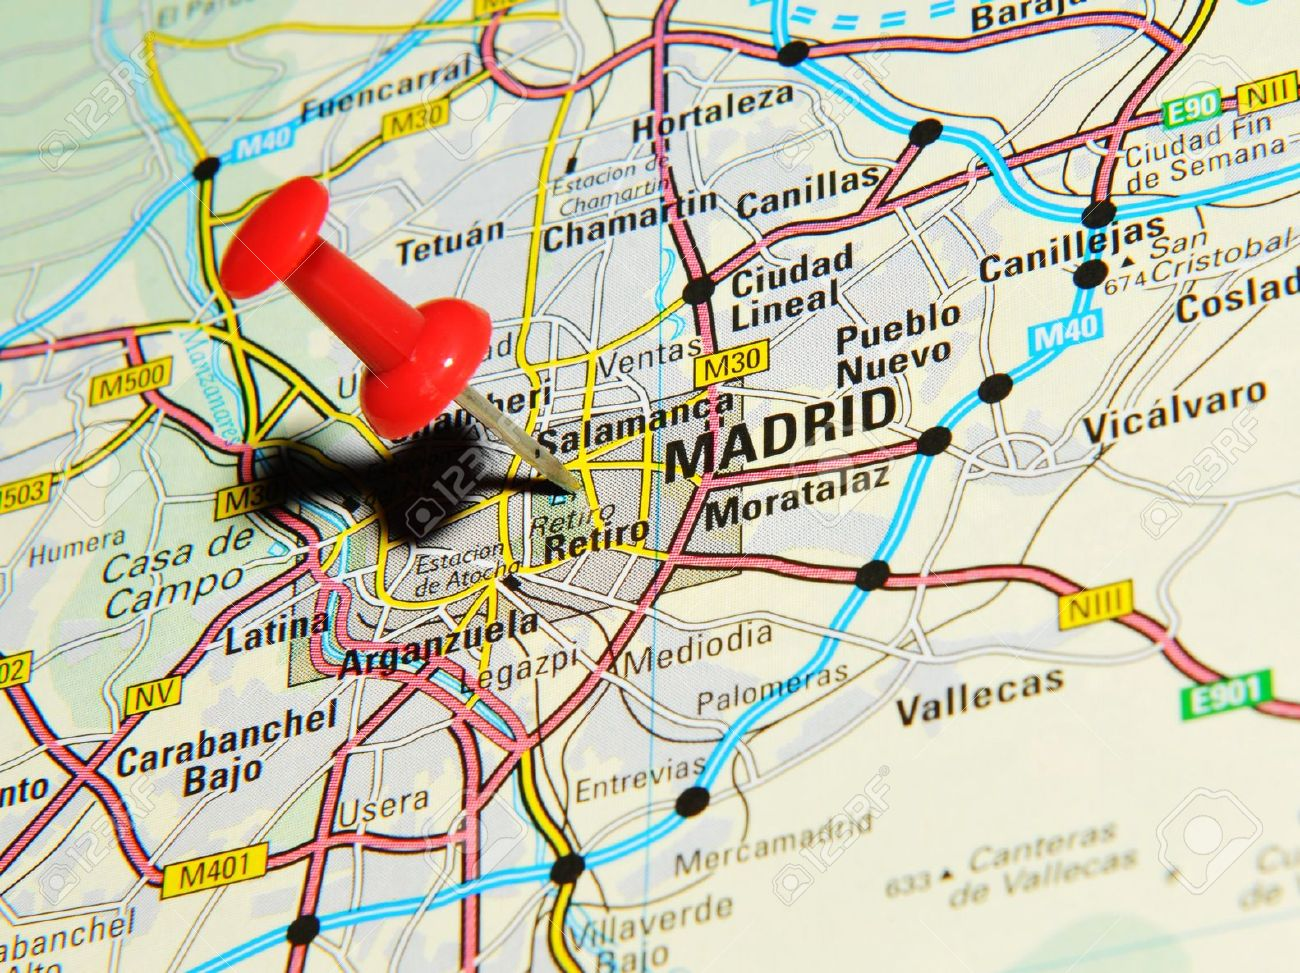 London Uk 13 June 2012 Madrid Spain Marked With Red Pushpin Stock Photo Picture And Royalty Free Image Image 14515034